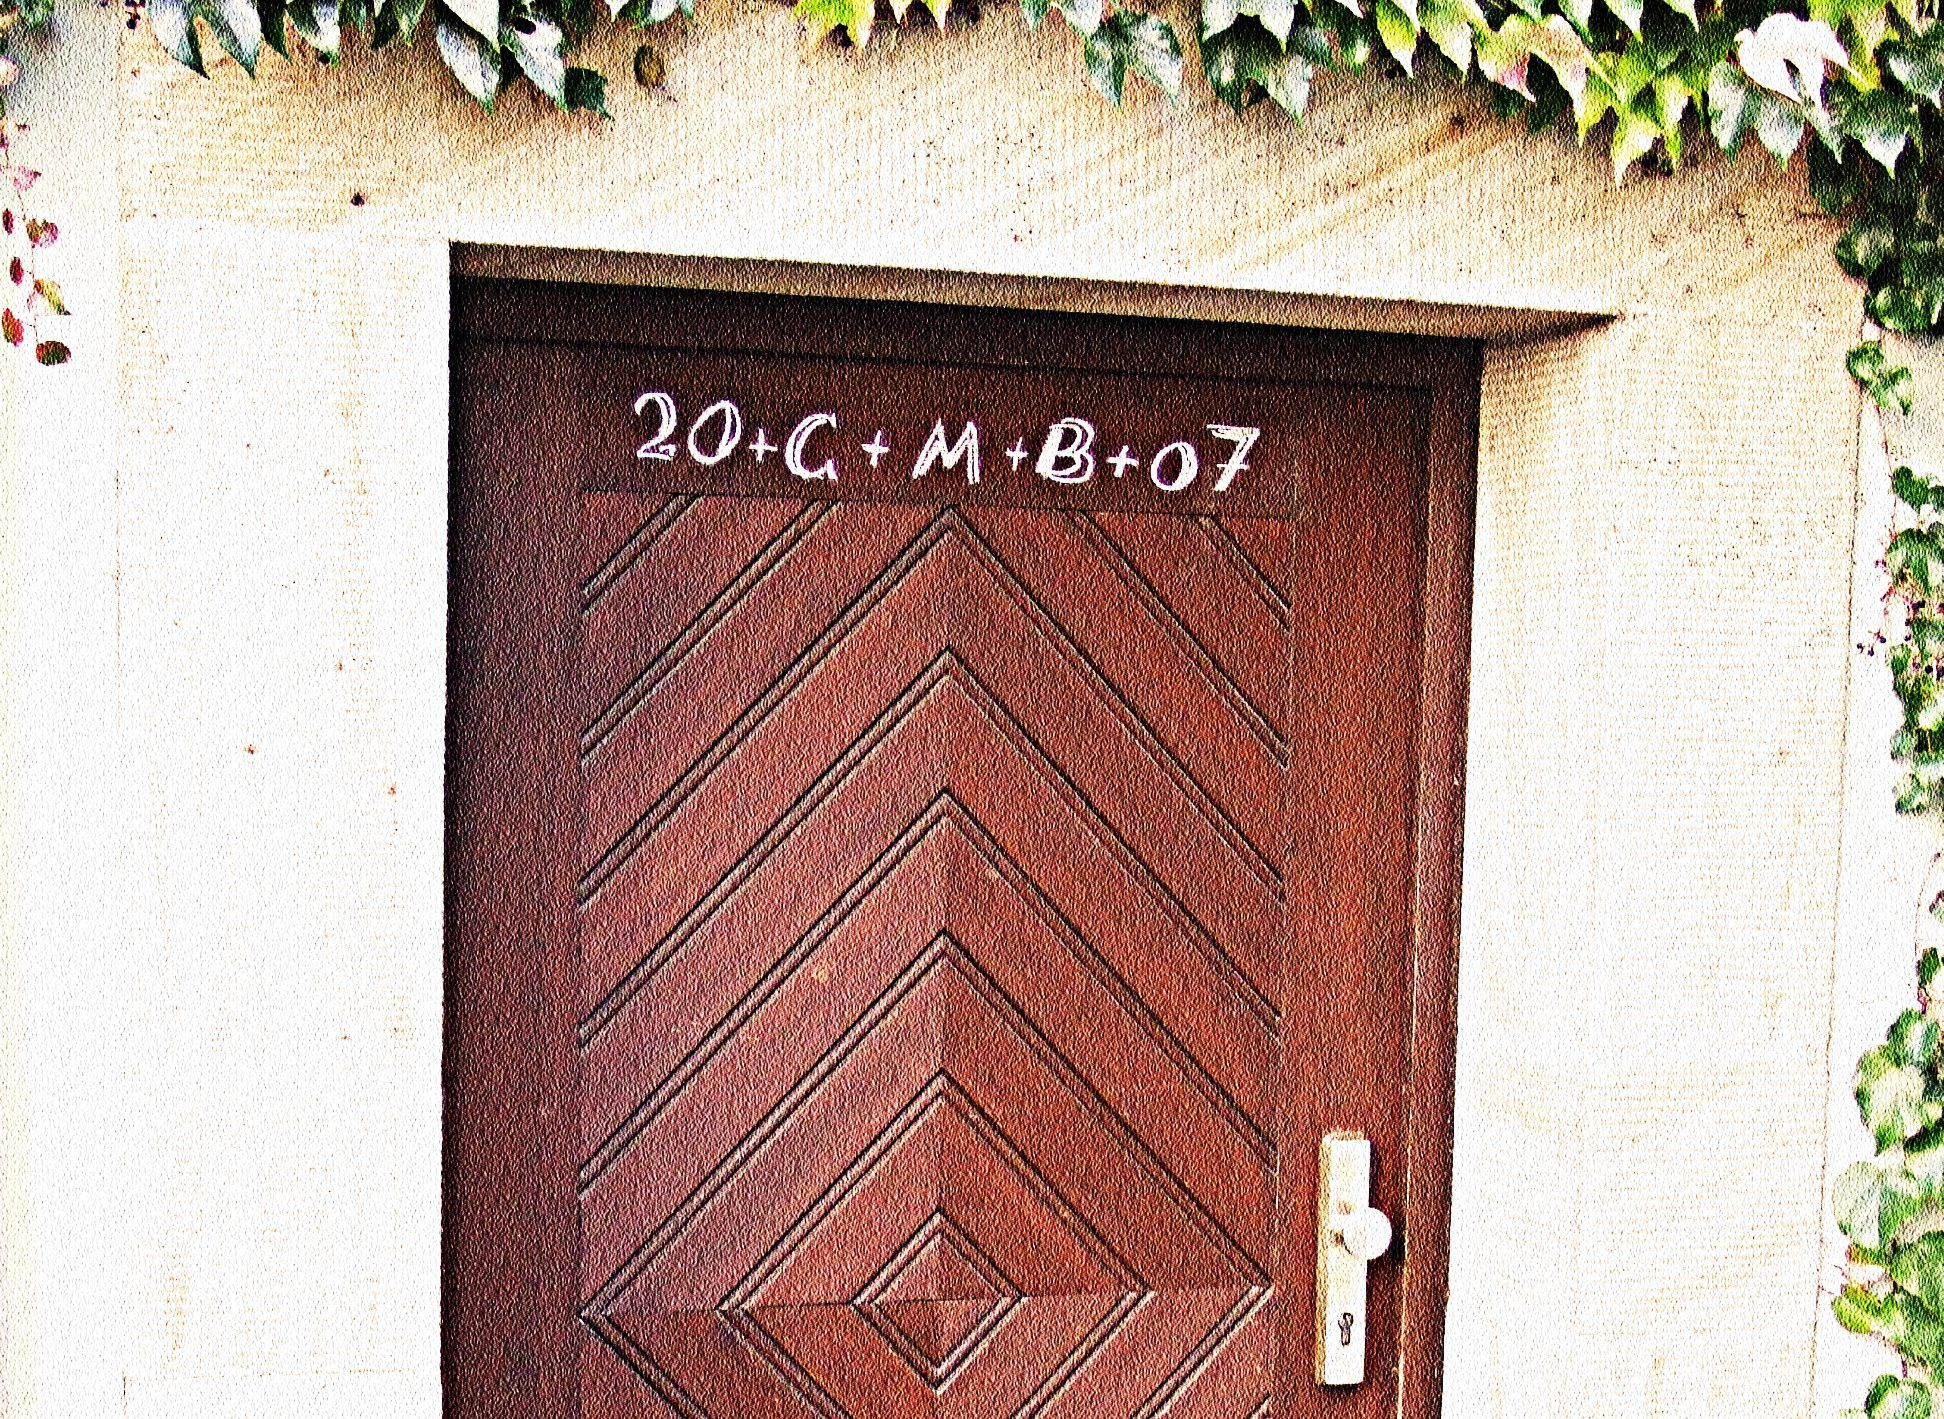 An Epiphany and  Twelfth Night  tradition is to mark the doorway of the home & An Epiphany and